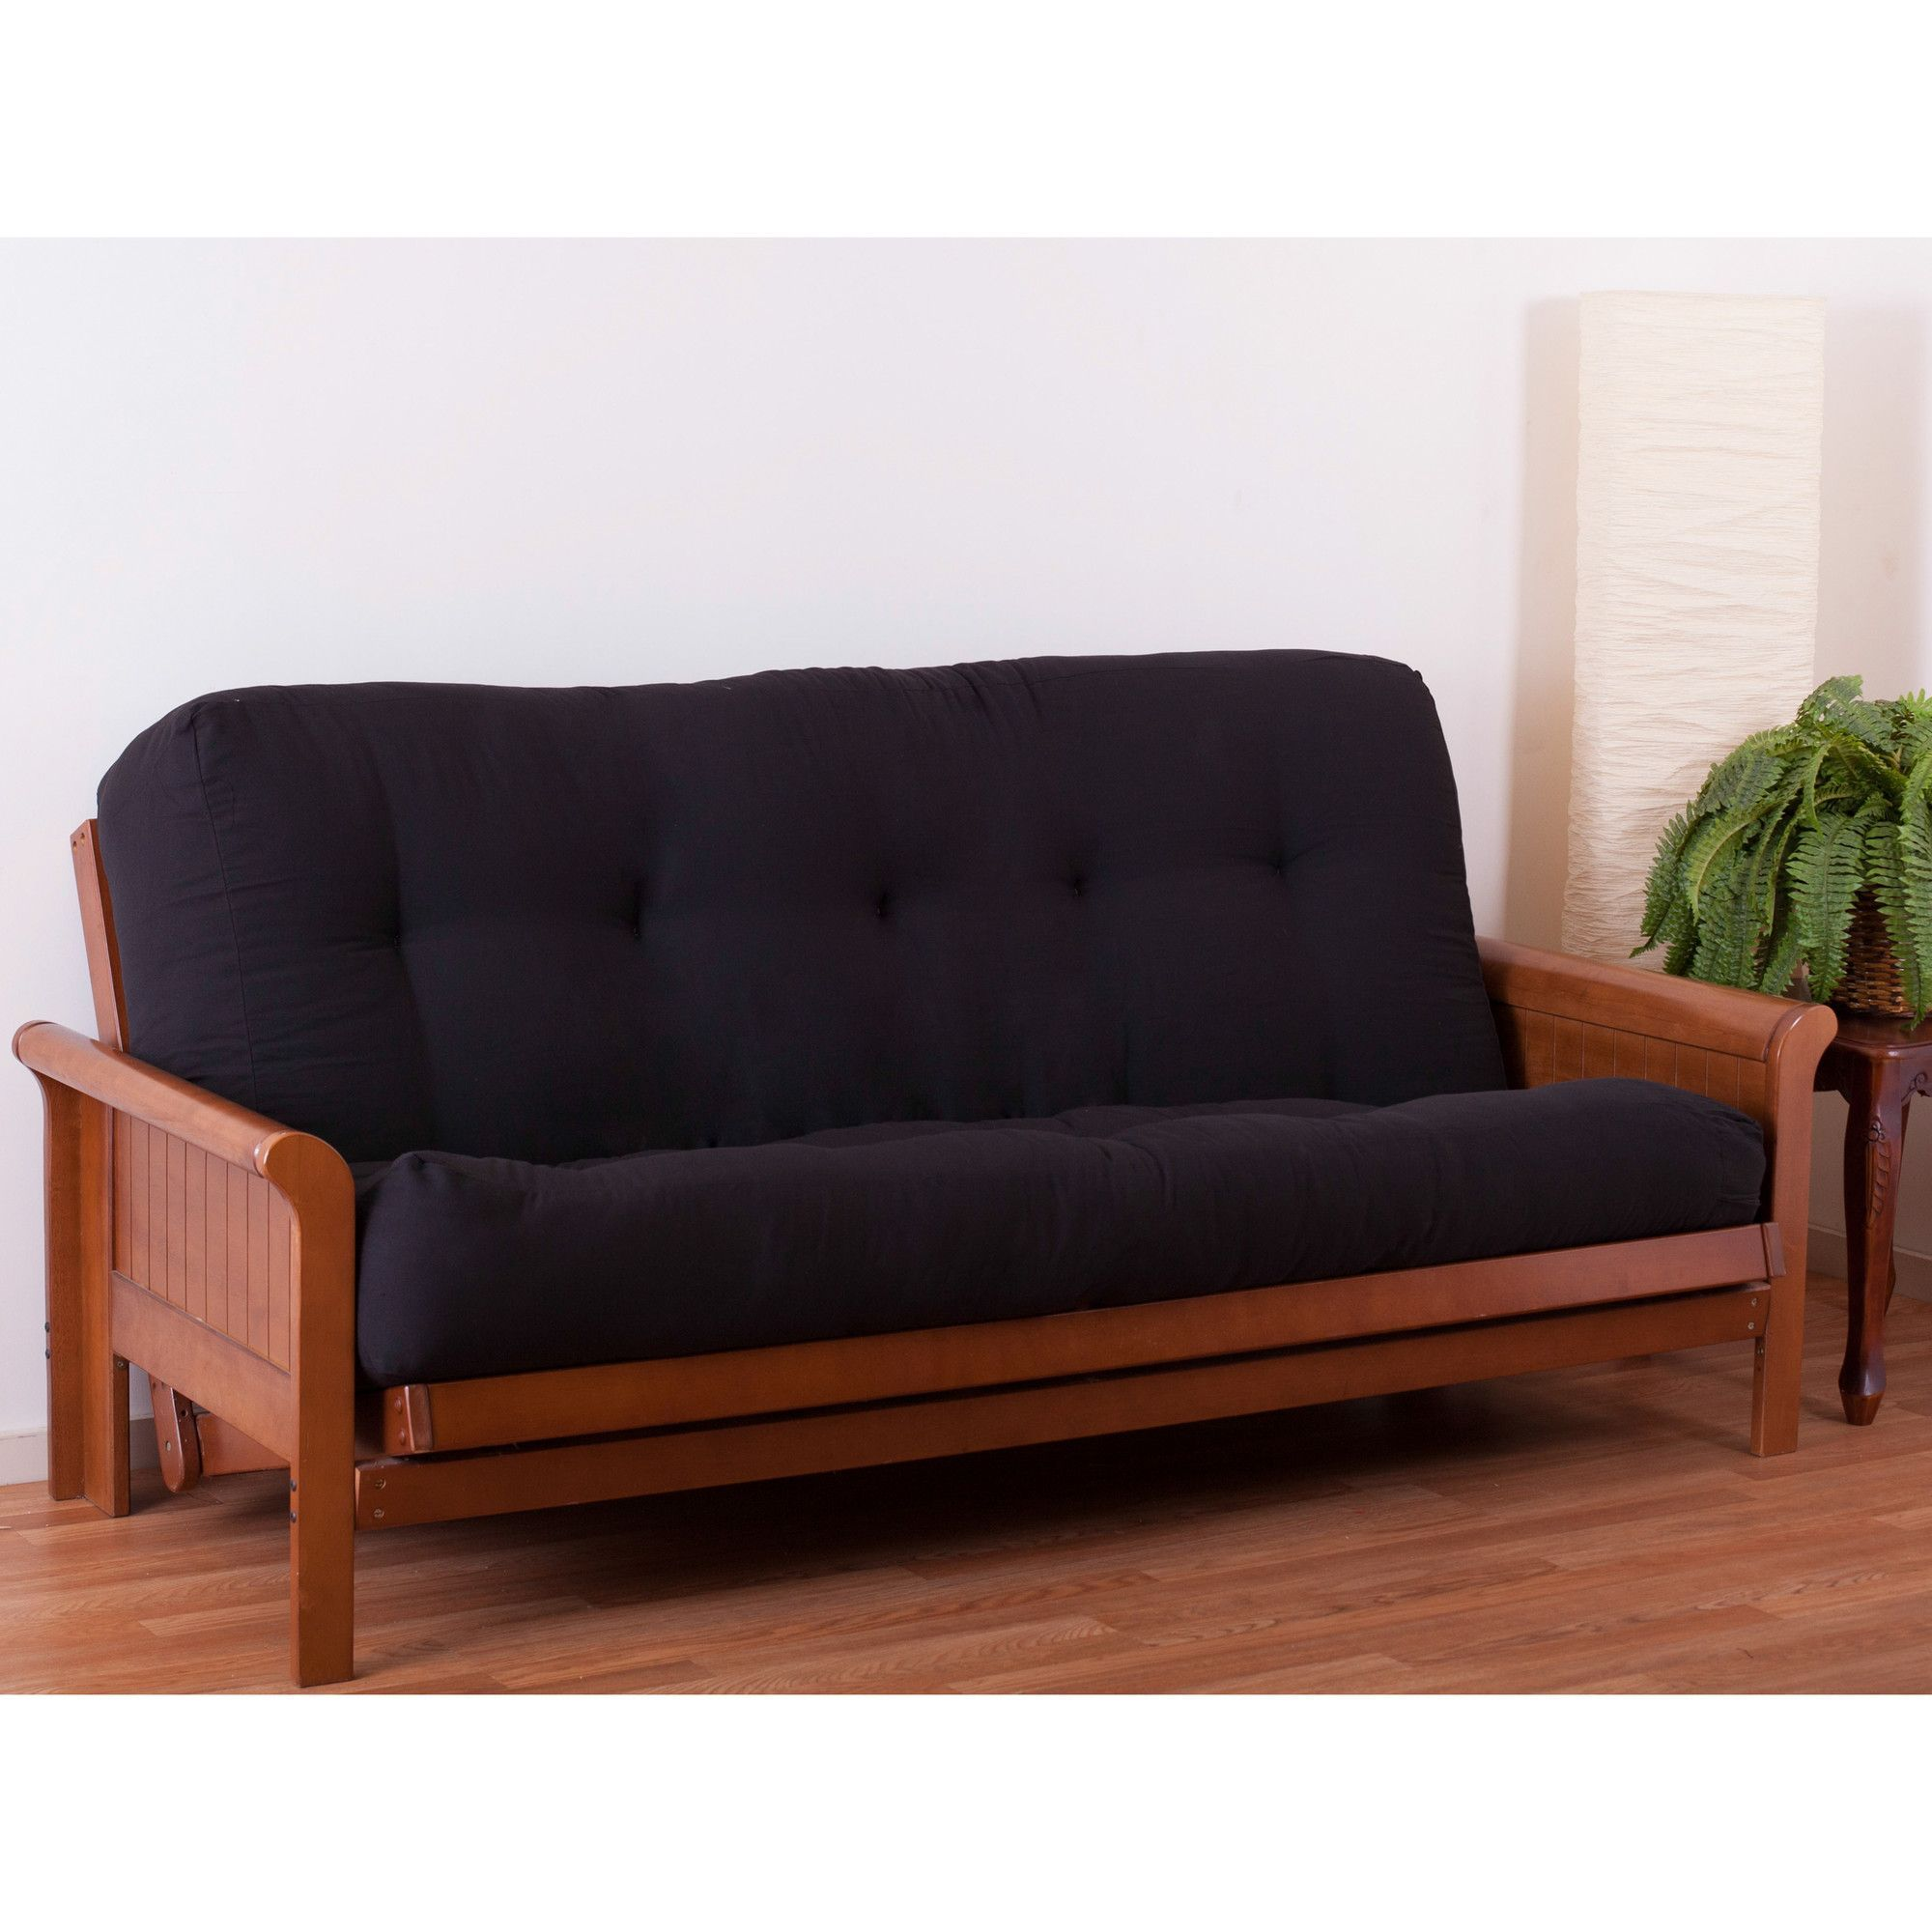 Overall Width Side To 54 Product Weight 71 Lbs Length Head Toe 75 The Blazing Needle Innerspring 9 Full Size Futon